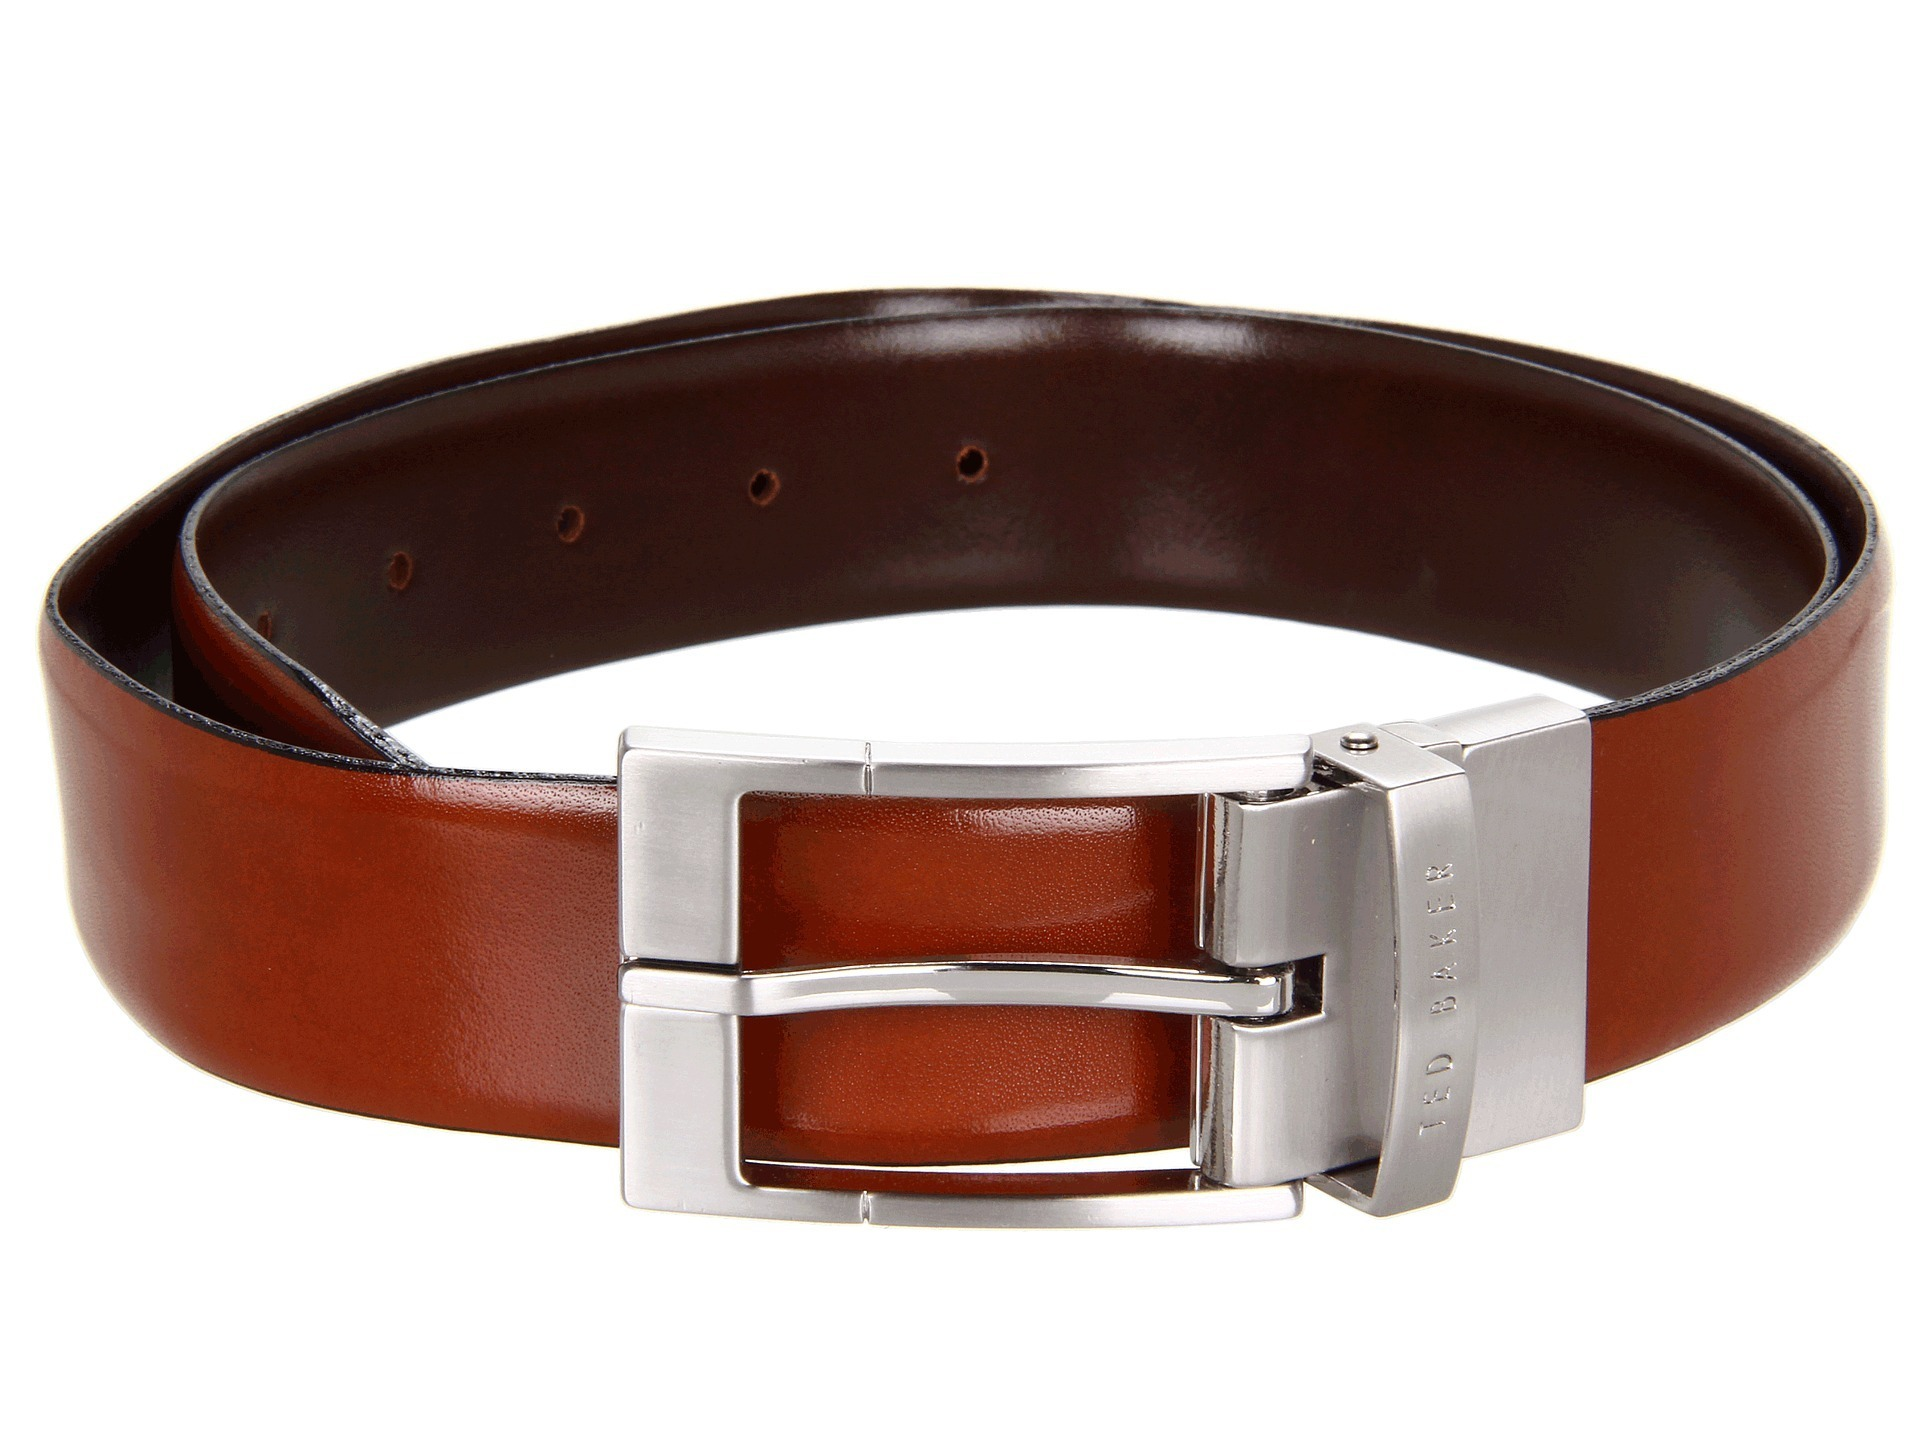 関税送料込み【TED BAKER】Connary Reversible Belt ベルト